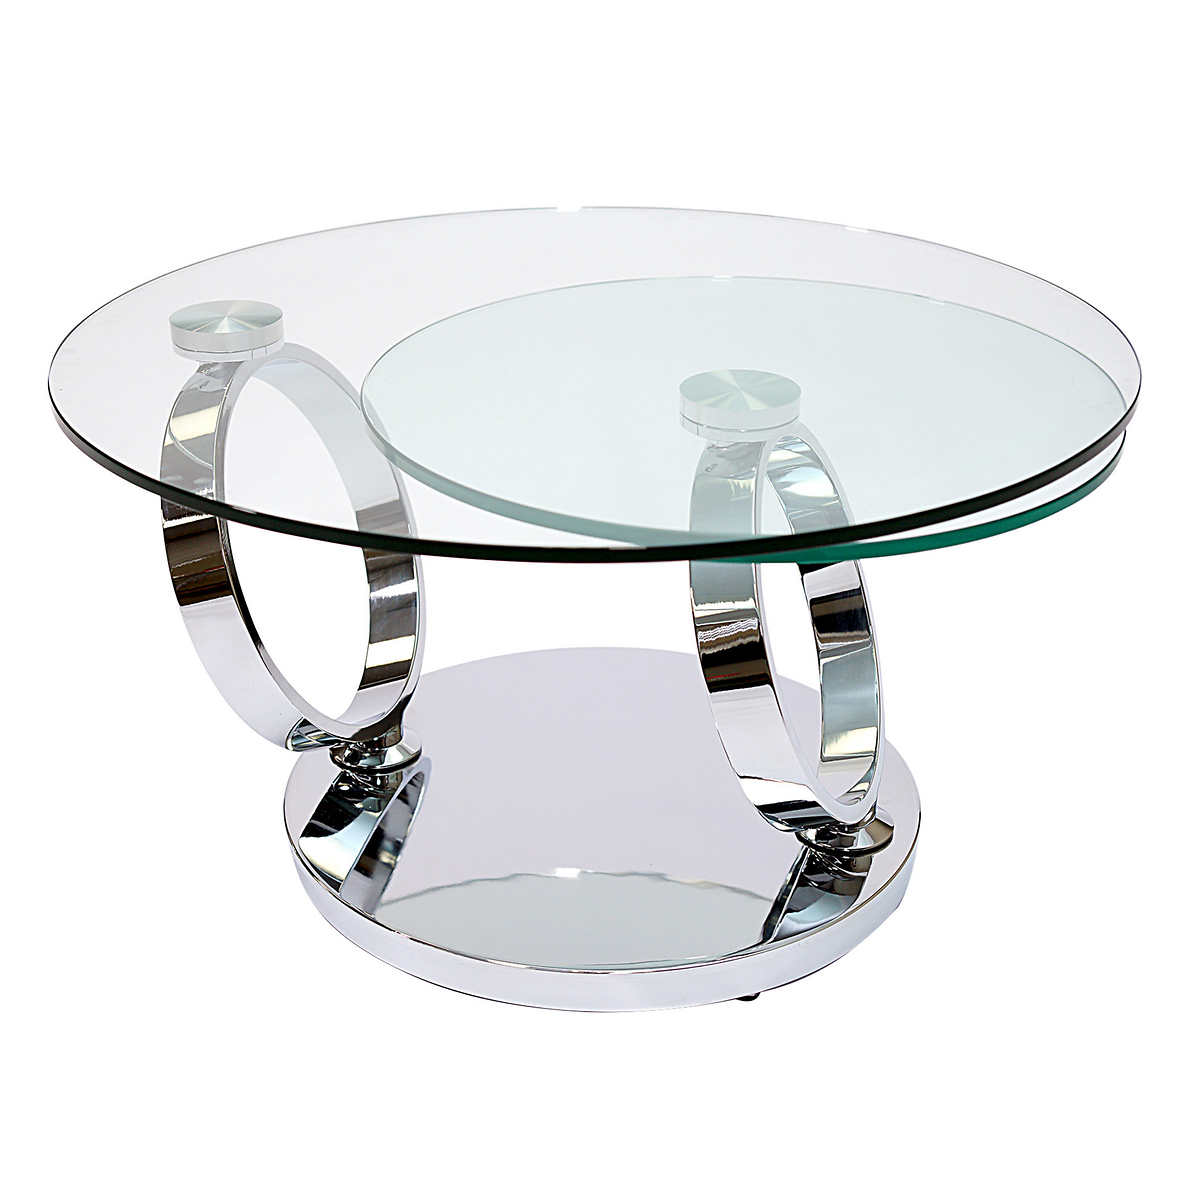 apus glass coffee table service tables and end high living room furniture brands carolina cottage madison nesting outdoor console niagara street toronto buffet dog crate